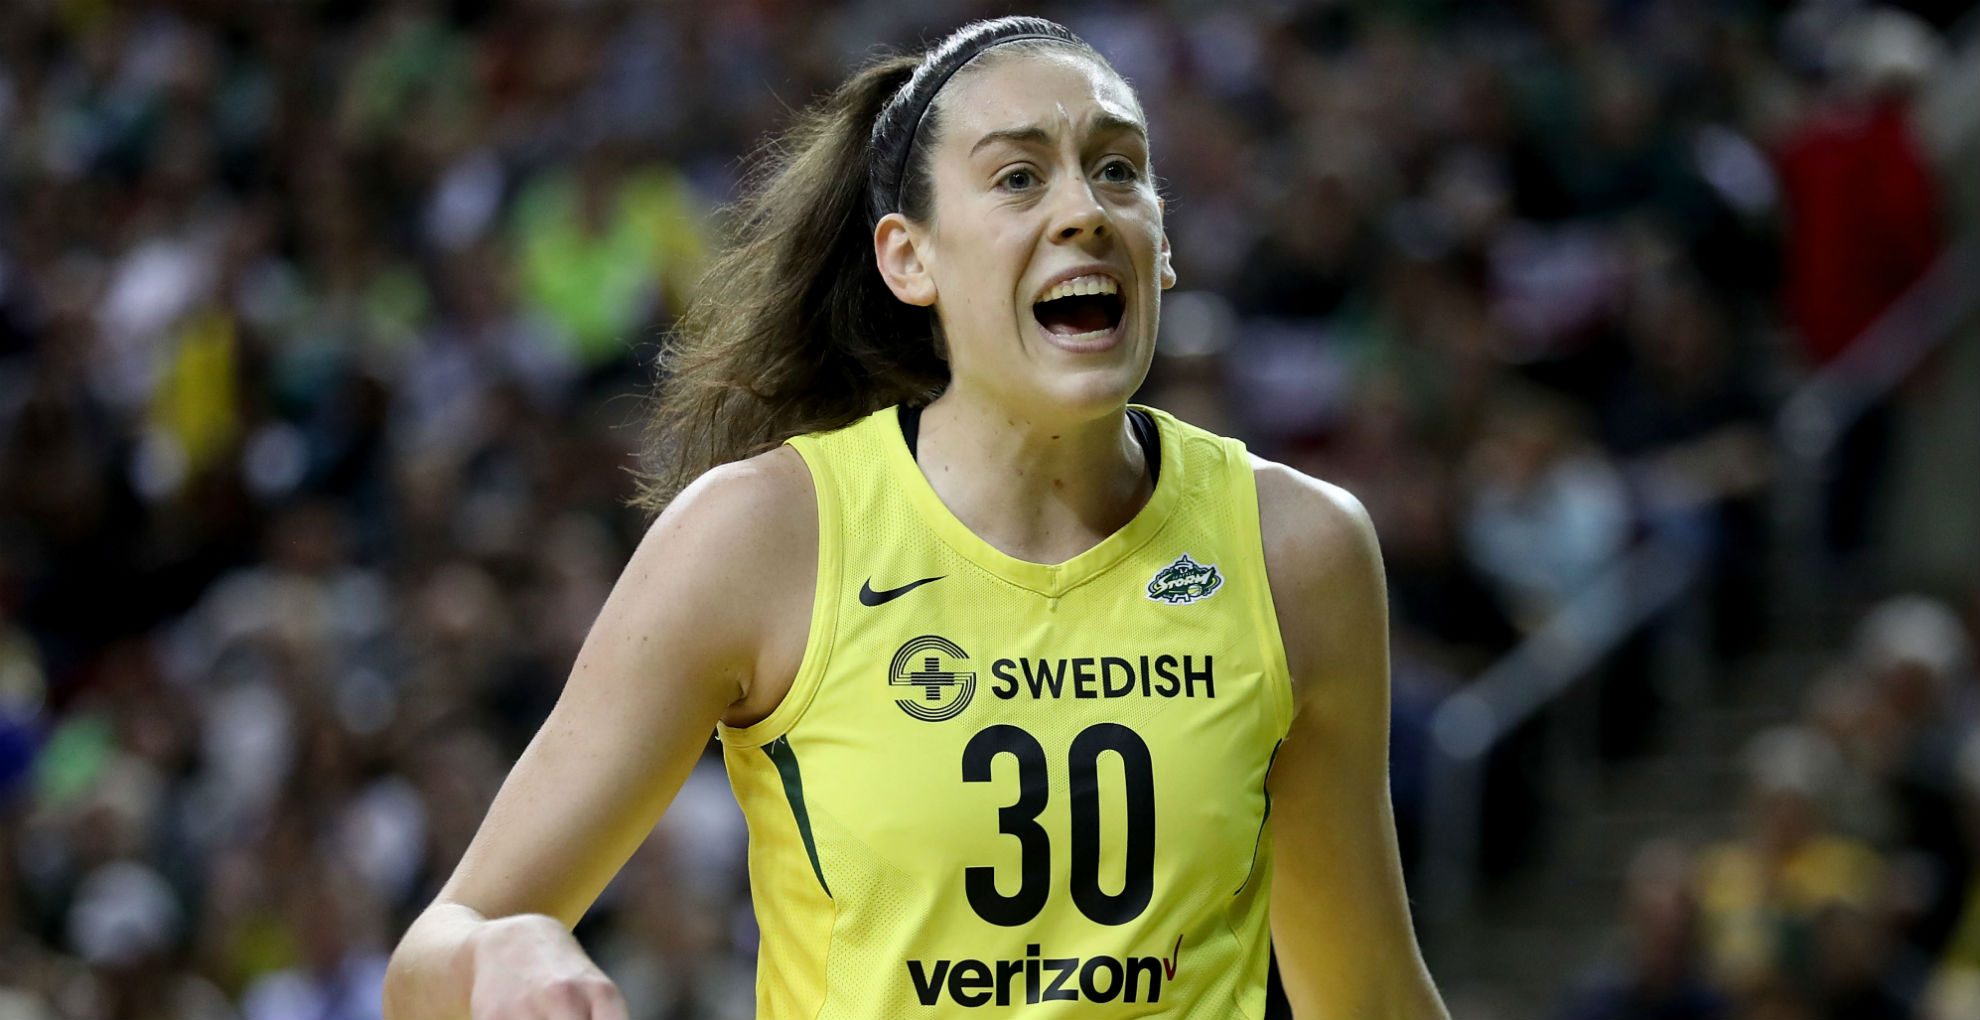 WNBA MVP Breanna Stewart tears Achilles' tendon in right leg